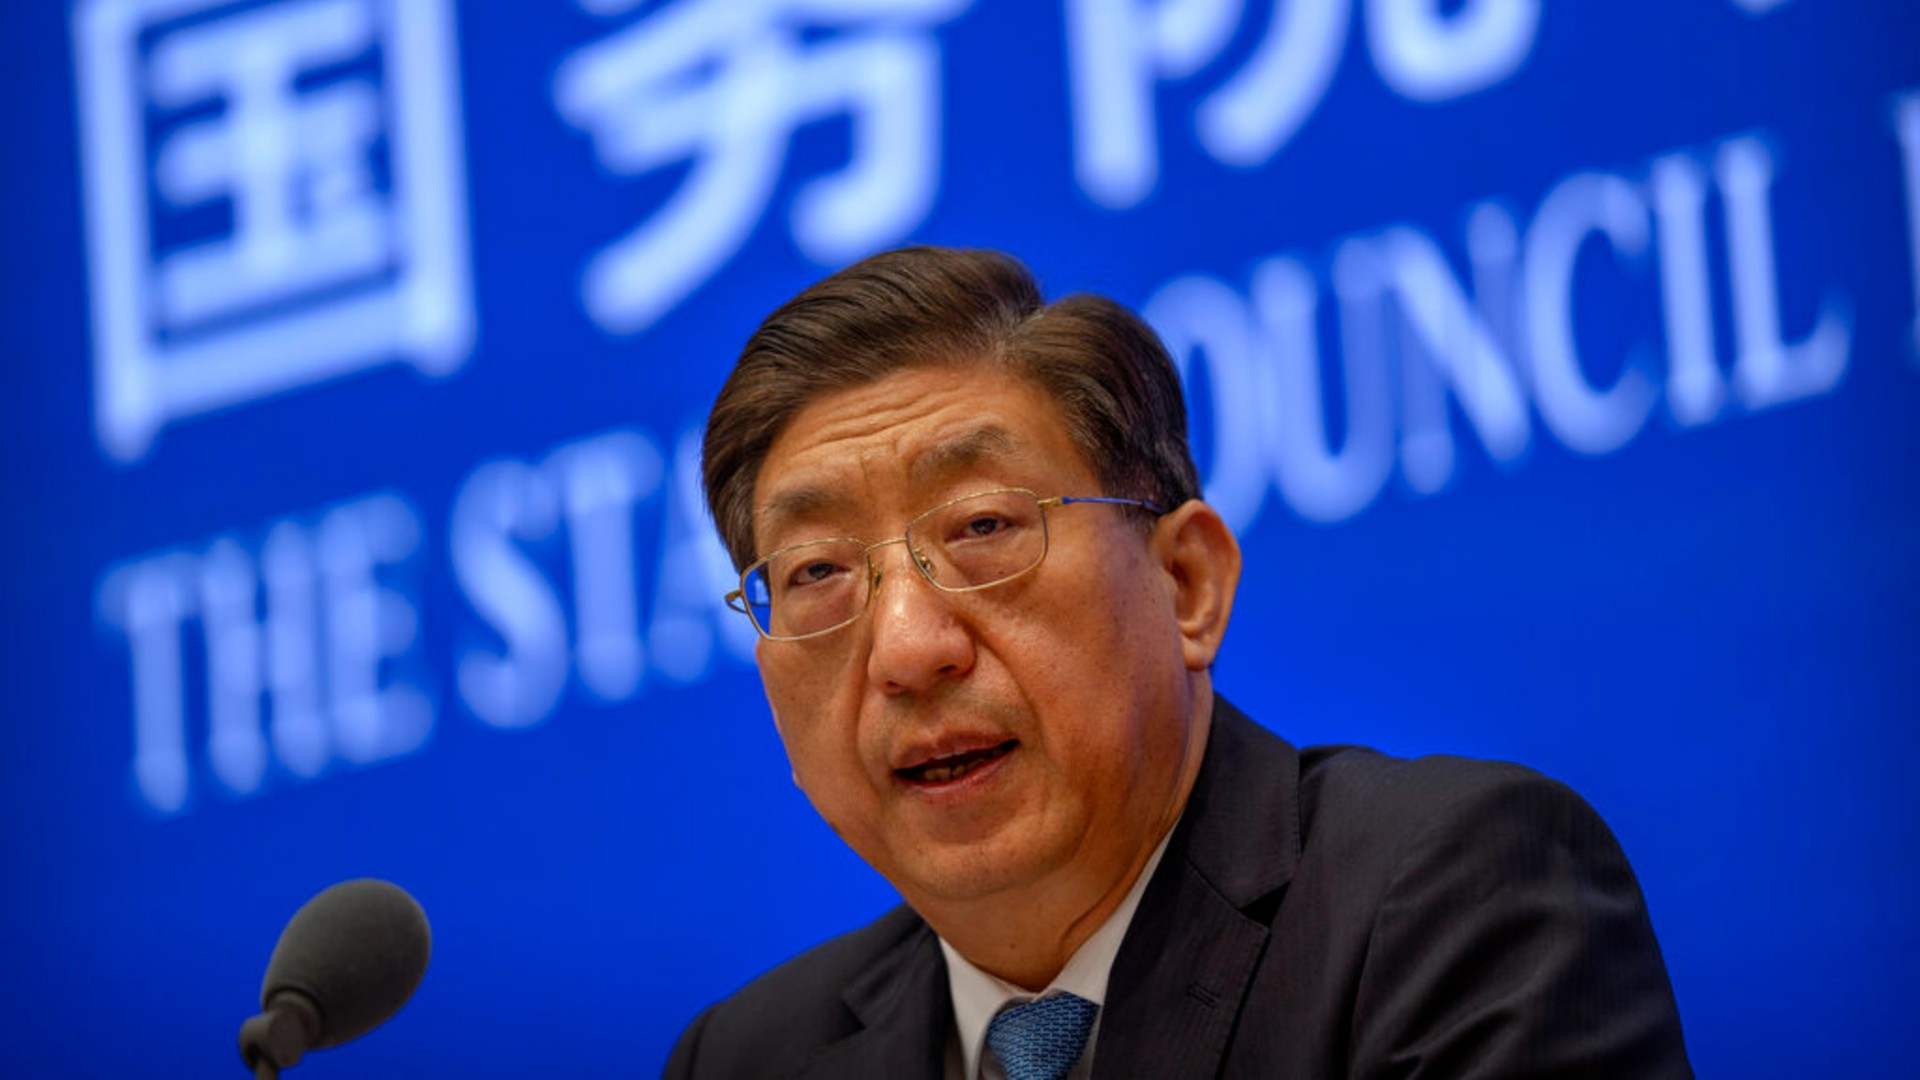 Zeng Yixin, Vice Minister of China's National Health Commission, speaks at a press conference at the State Council Information Office in Beijing, Thursday, July 22, 2021. (AP Photo/Mark Schiefelbein)